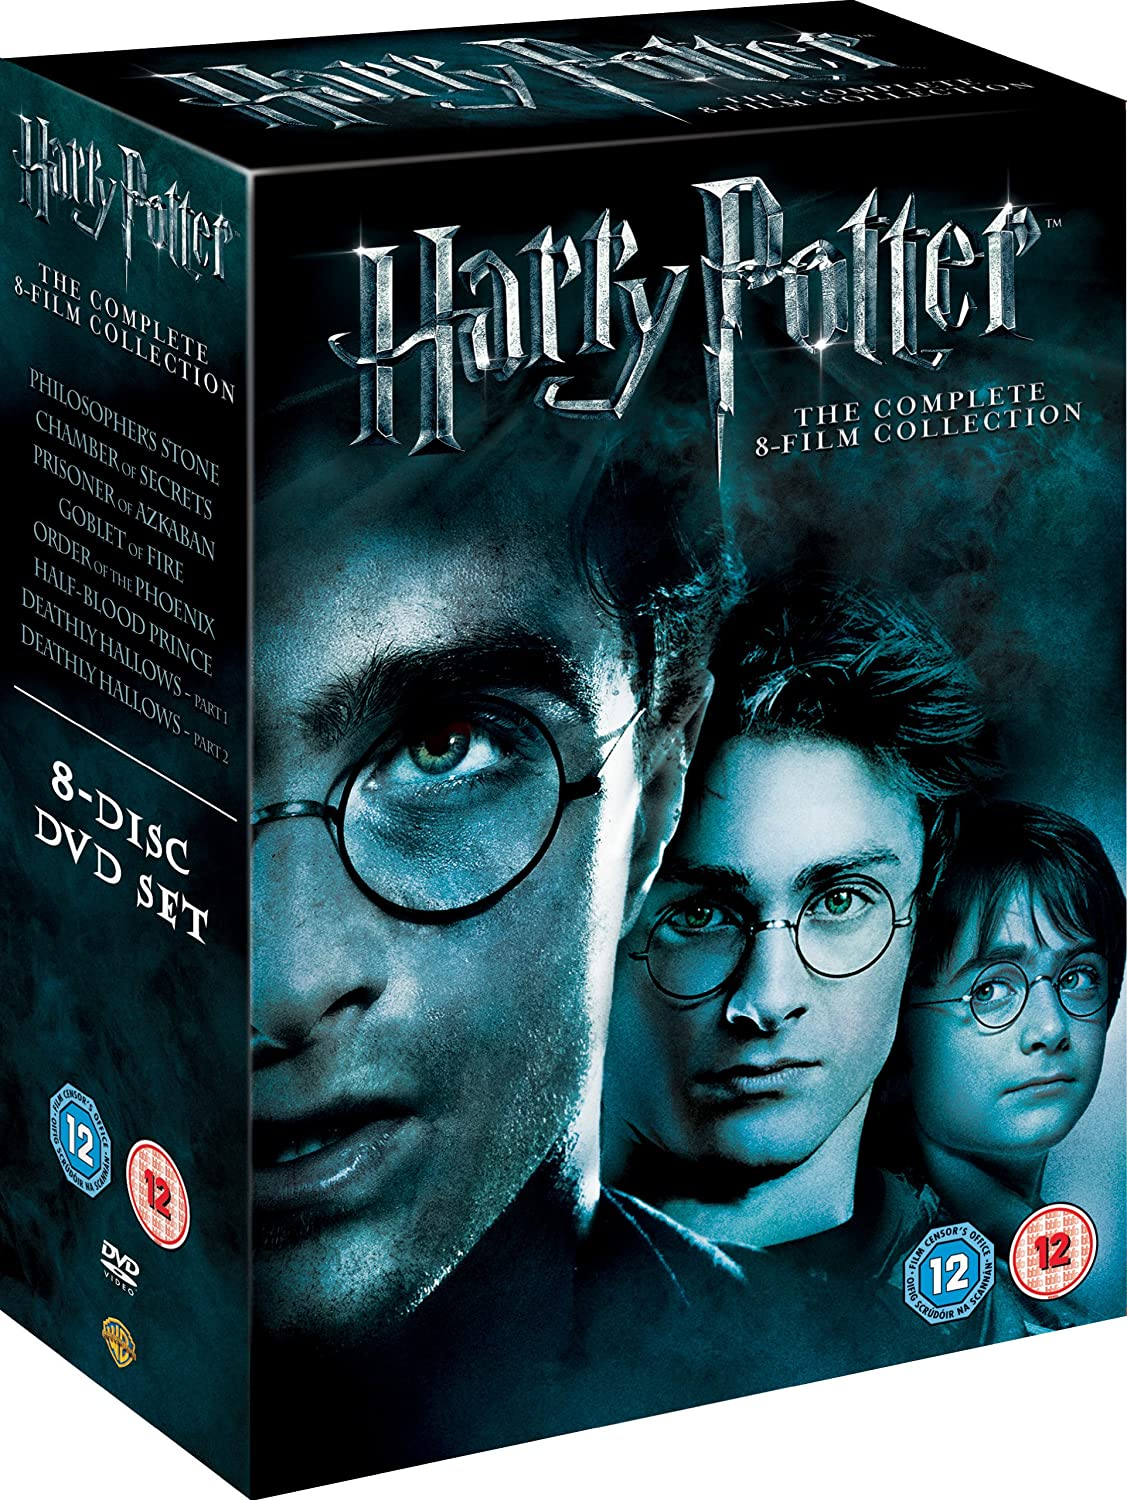 Image result for harry potter dvd box set 1-8